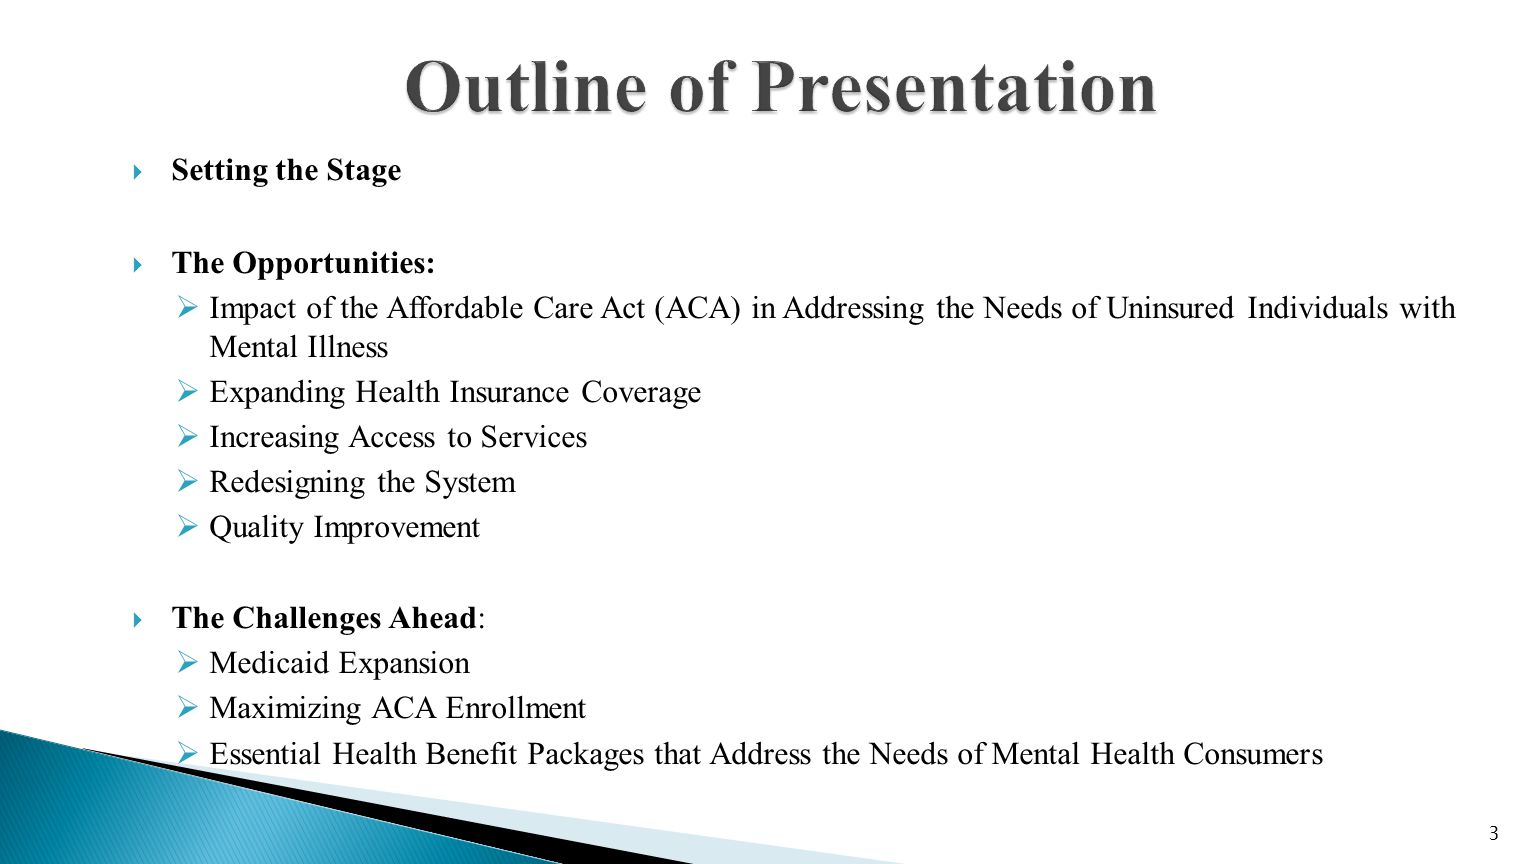  The Mental Health Parity and Addiction Equity Act (MHPAEA) of 2008 prohibits financial requirements & treatment limitations for mental health and substance abuse benefits in group health plans from being more restrictive than those placed on medical and surgical benefits.